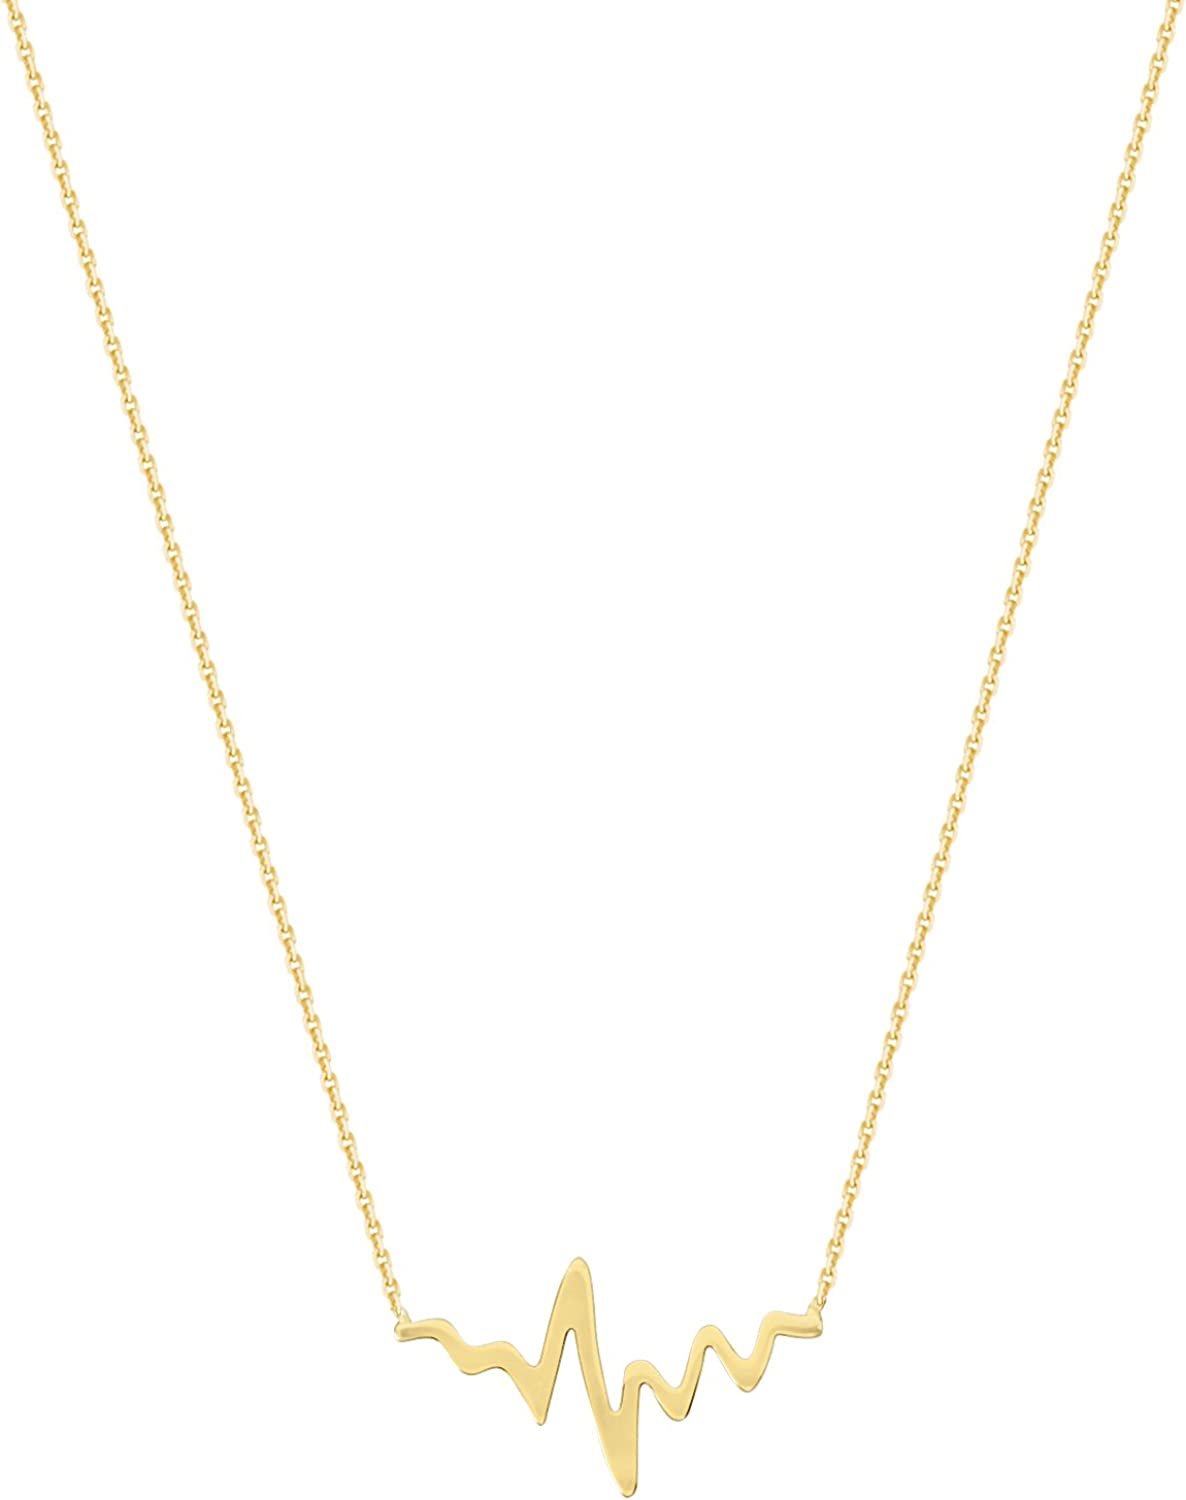 Birthday Gift Gold Heartbeat Necklace Solid Gold Heartbeat Cross Necklace 10K Solid Gold Heartbeat Necklace Mother\u2019s Day Gift